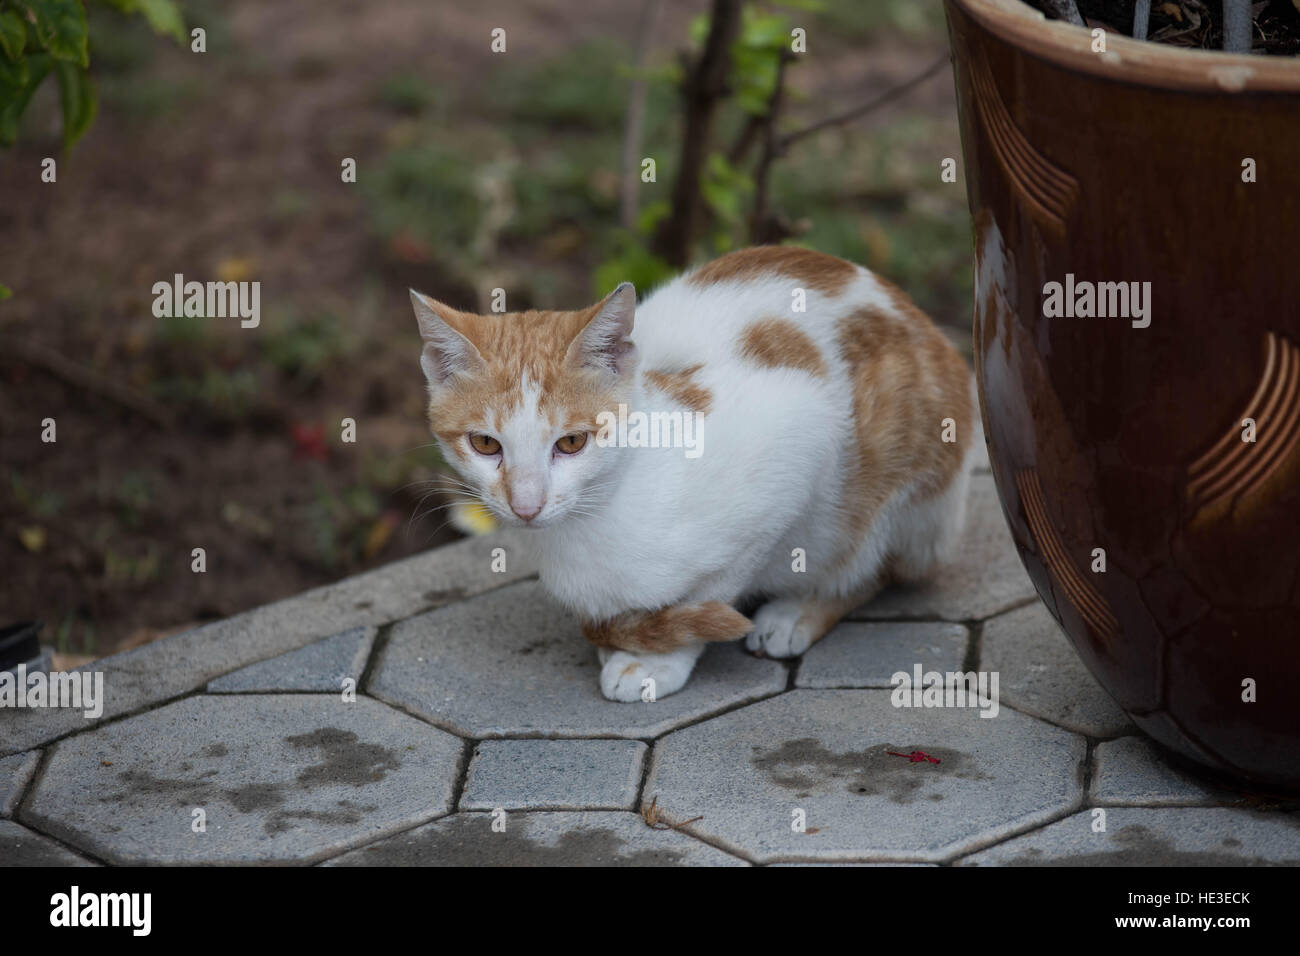 Domestic Cat Feline Kitty Kitten Black Brown White Whiskers Cute Pet Housepet Straycat Stipes Spots Poptime Paws - Stock Image